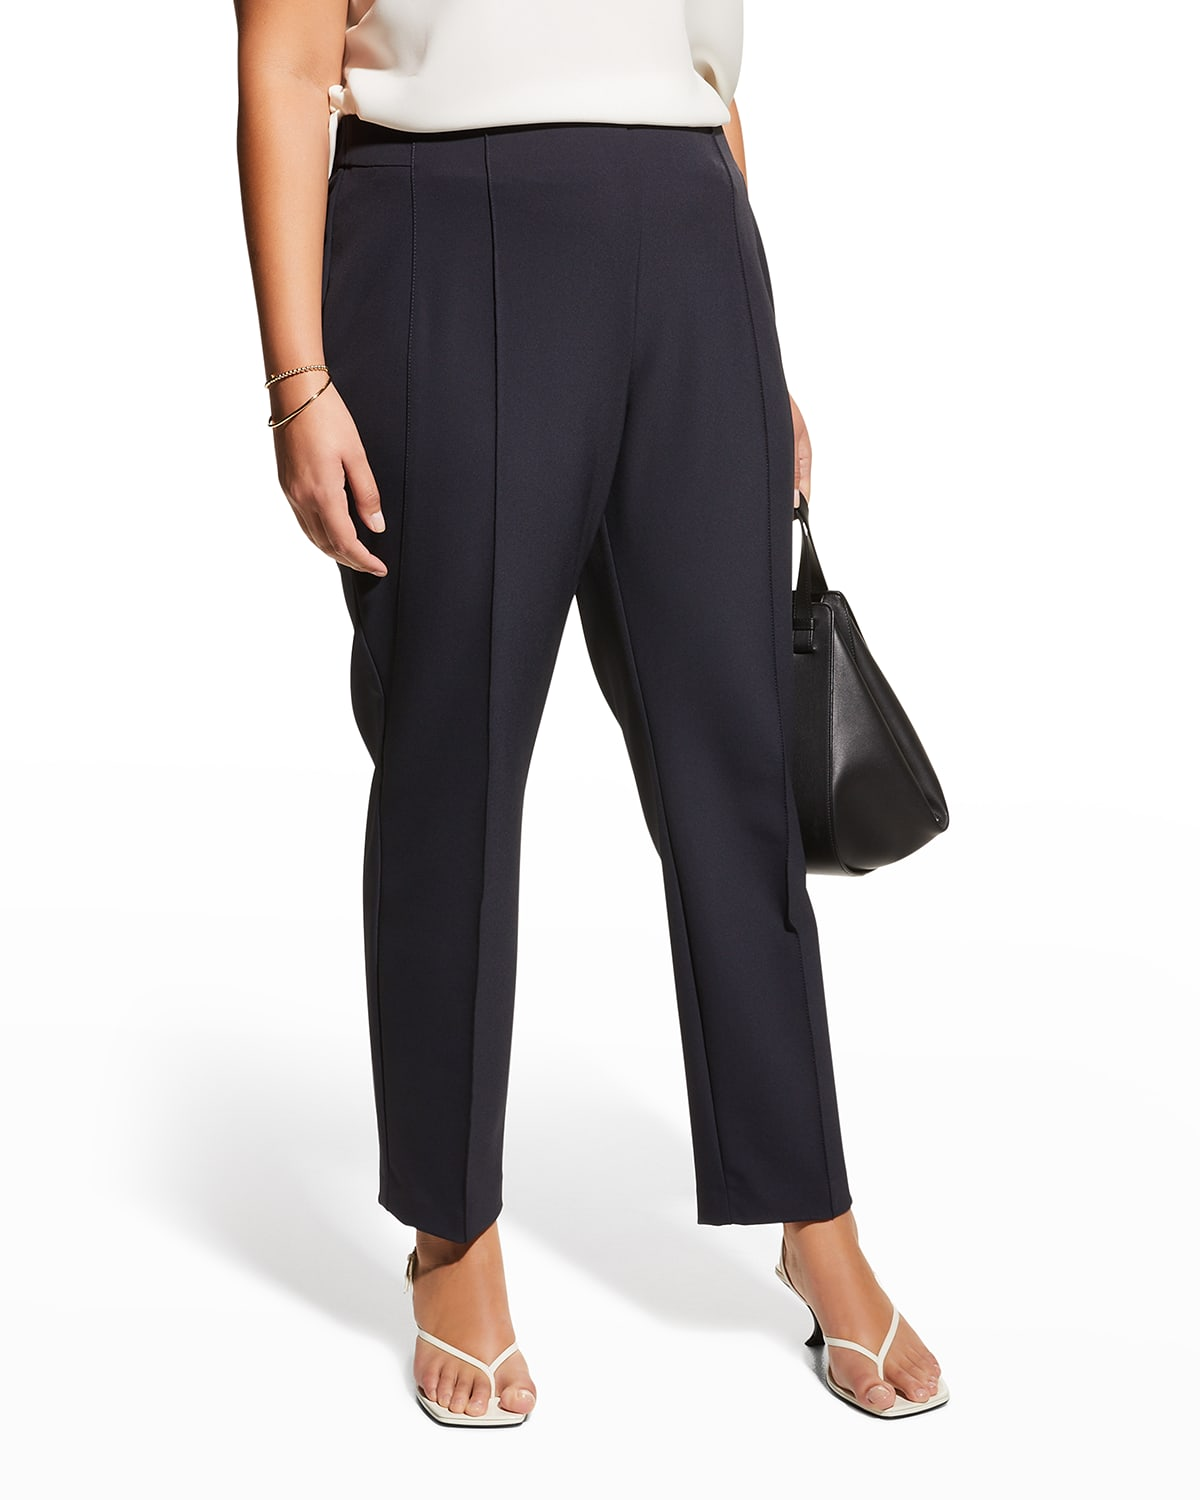 Plus Size Gramercy Acclaimed-Stretch Pants